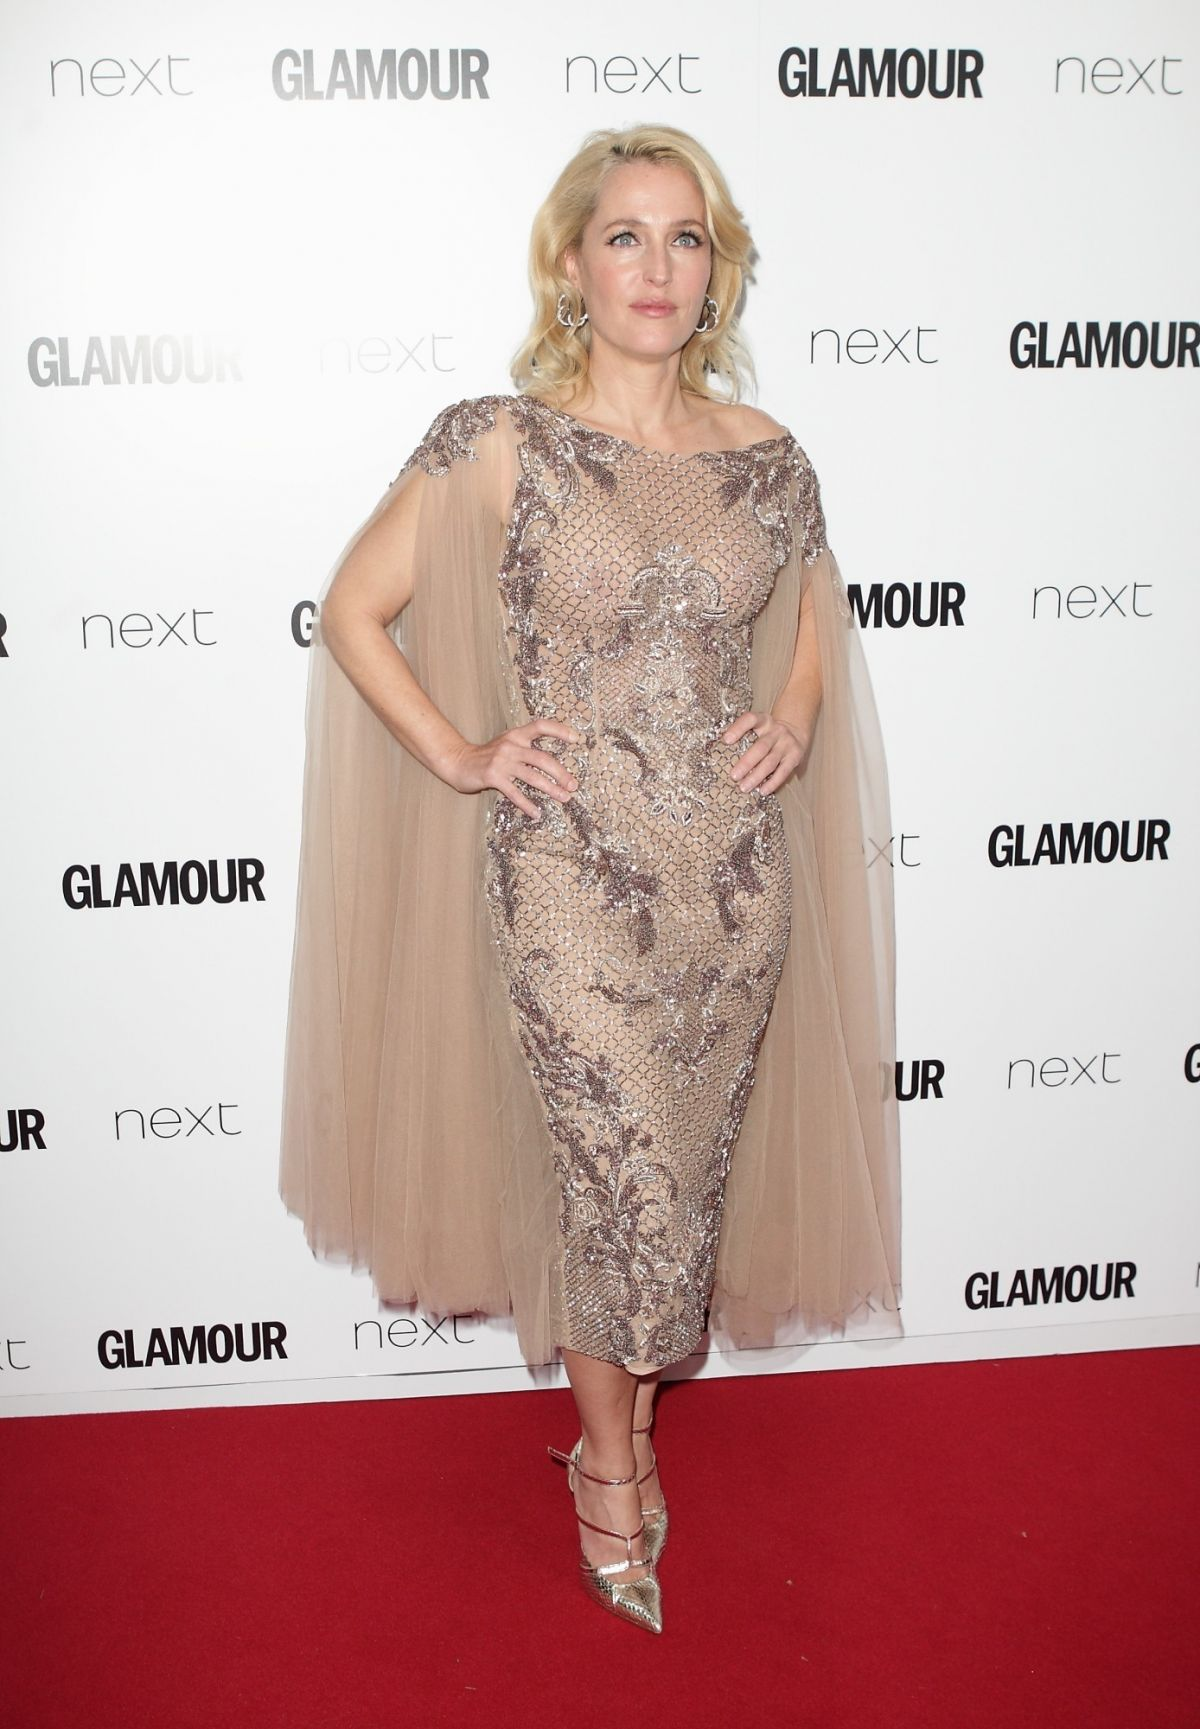 GILLIAN ANDERSON at Glamour Women of the Year Awards in London